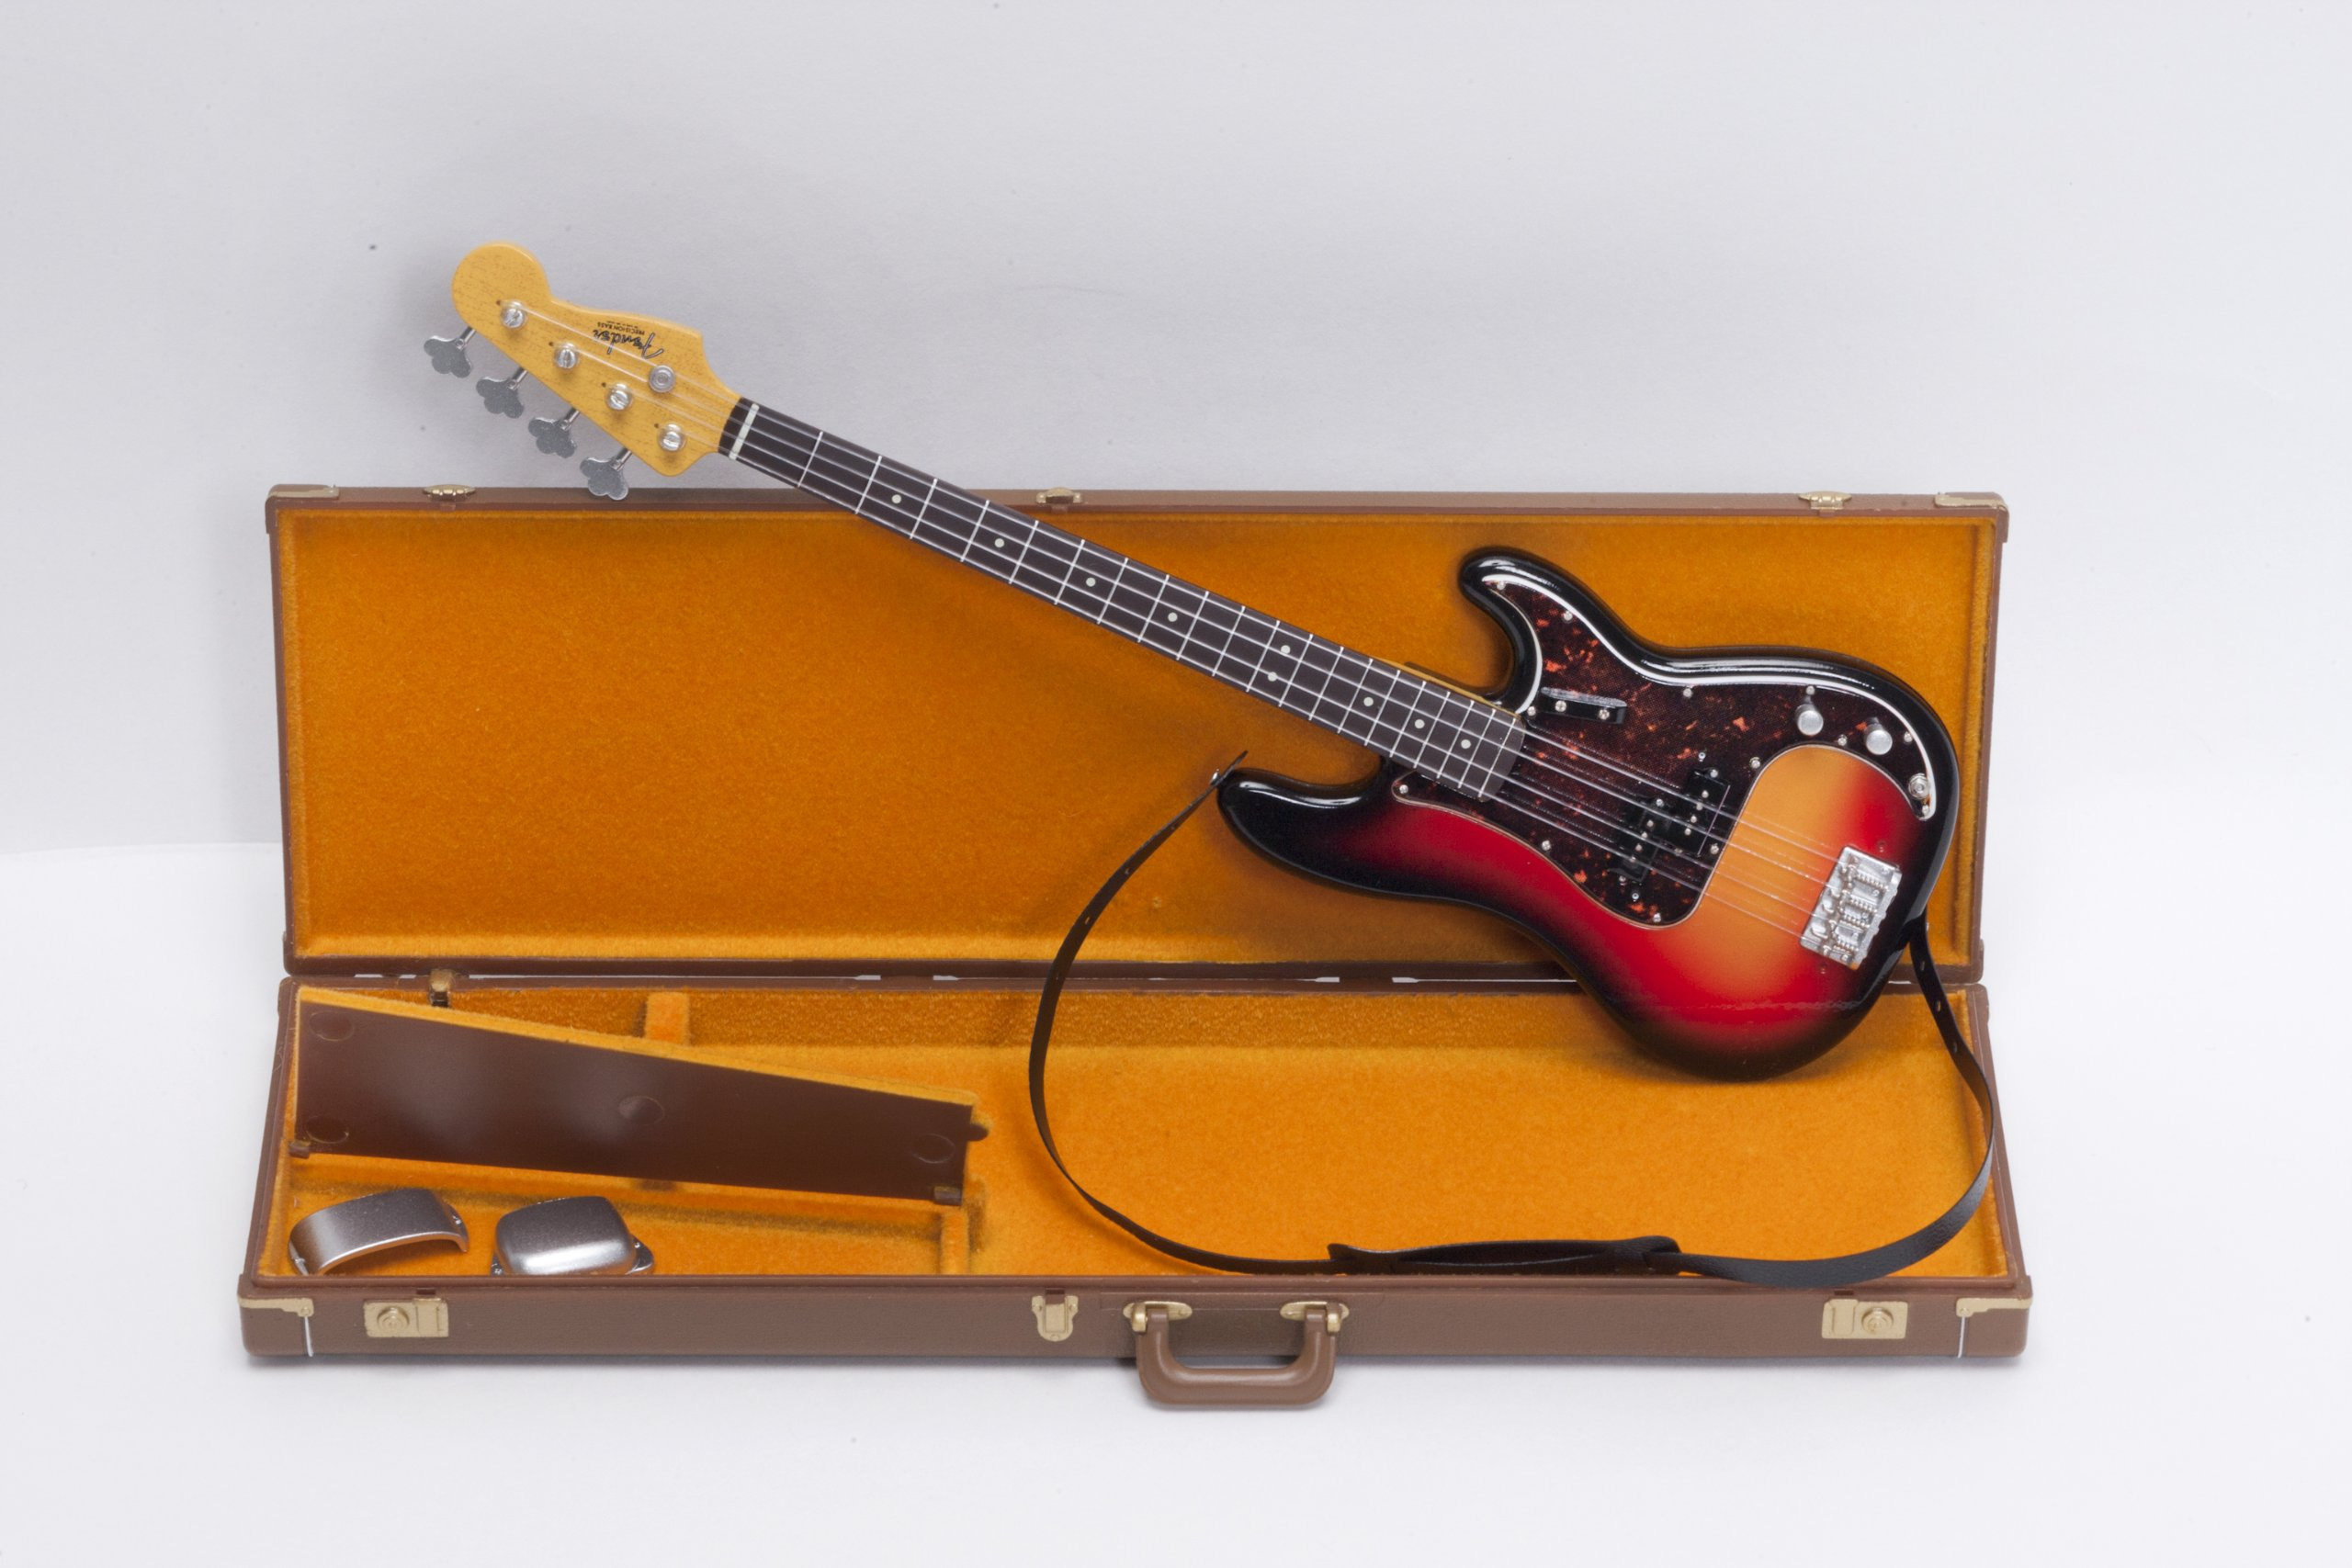 FENDER THE BEST COLLECTION 1962 PRECISION BASS & BROWN TOLEX CASE (Guitar Legend Series) (Japanese Edition)